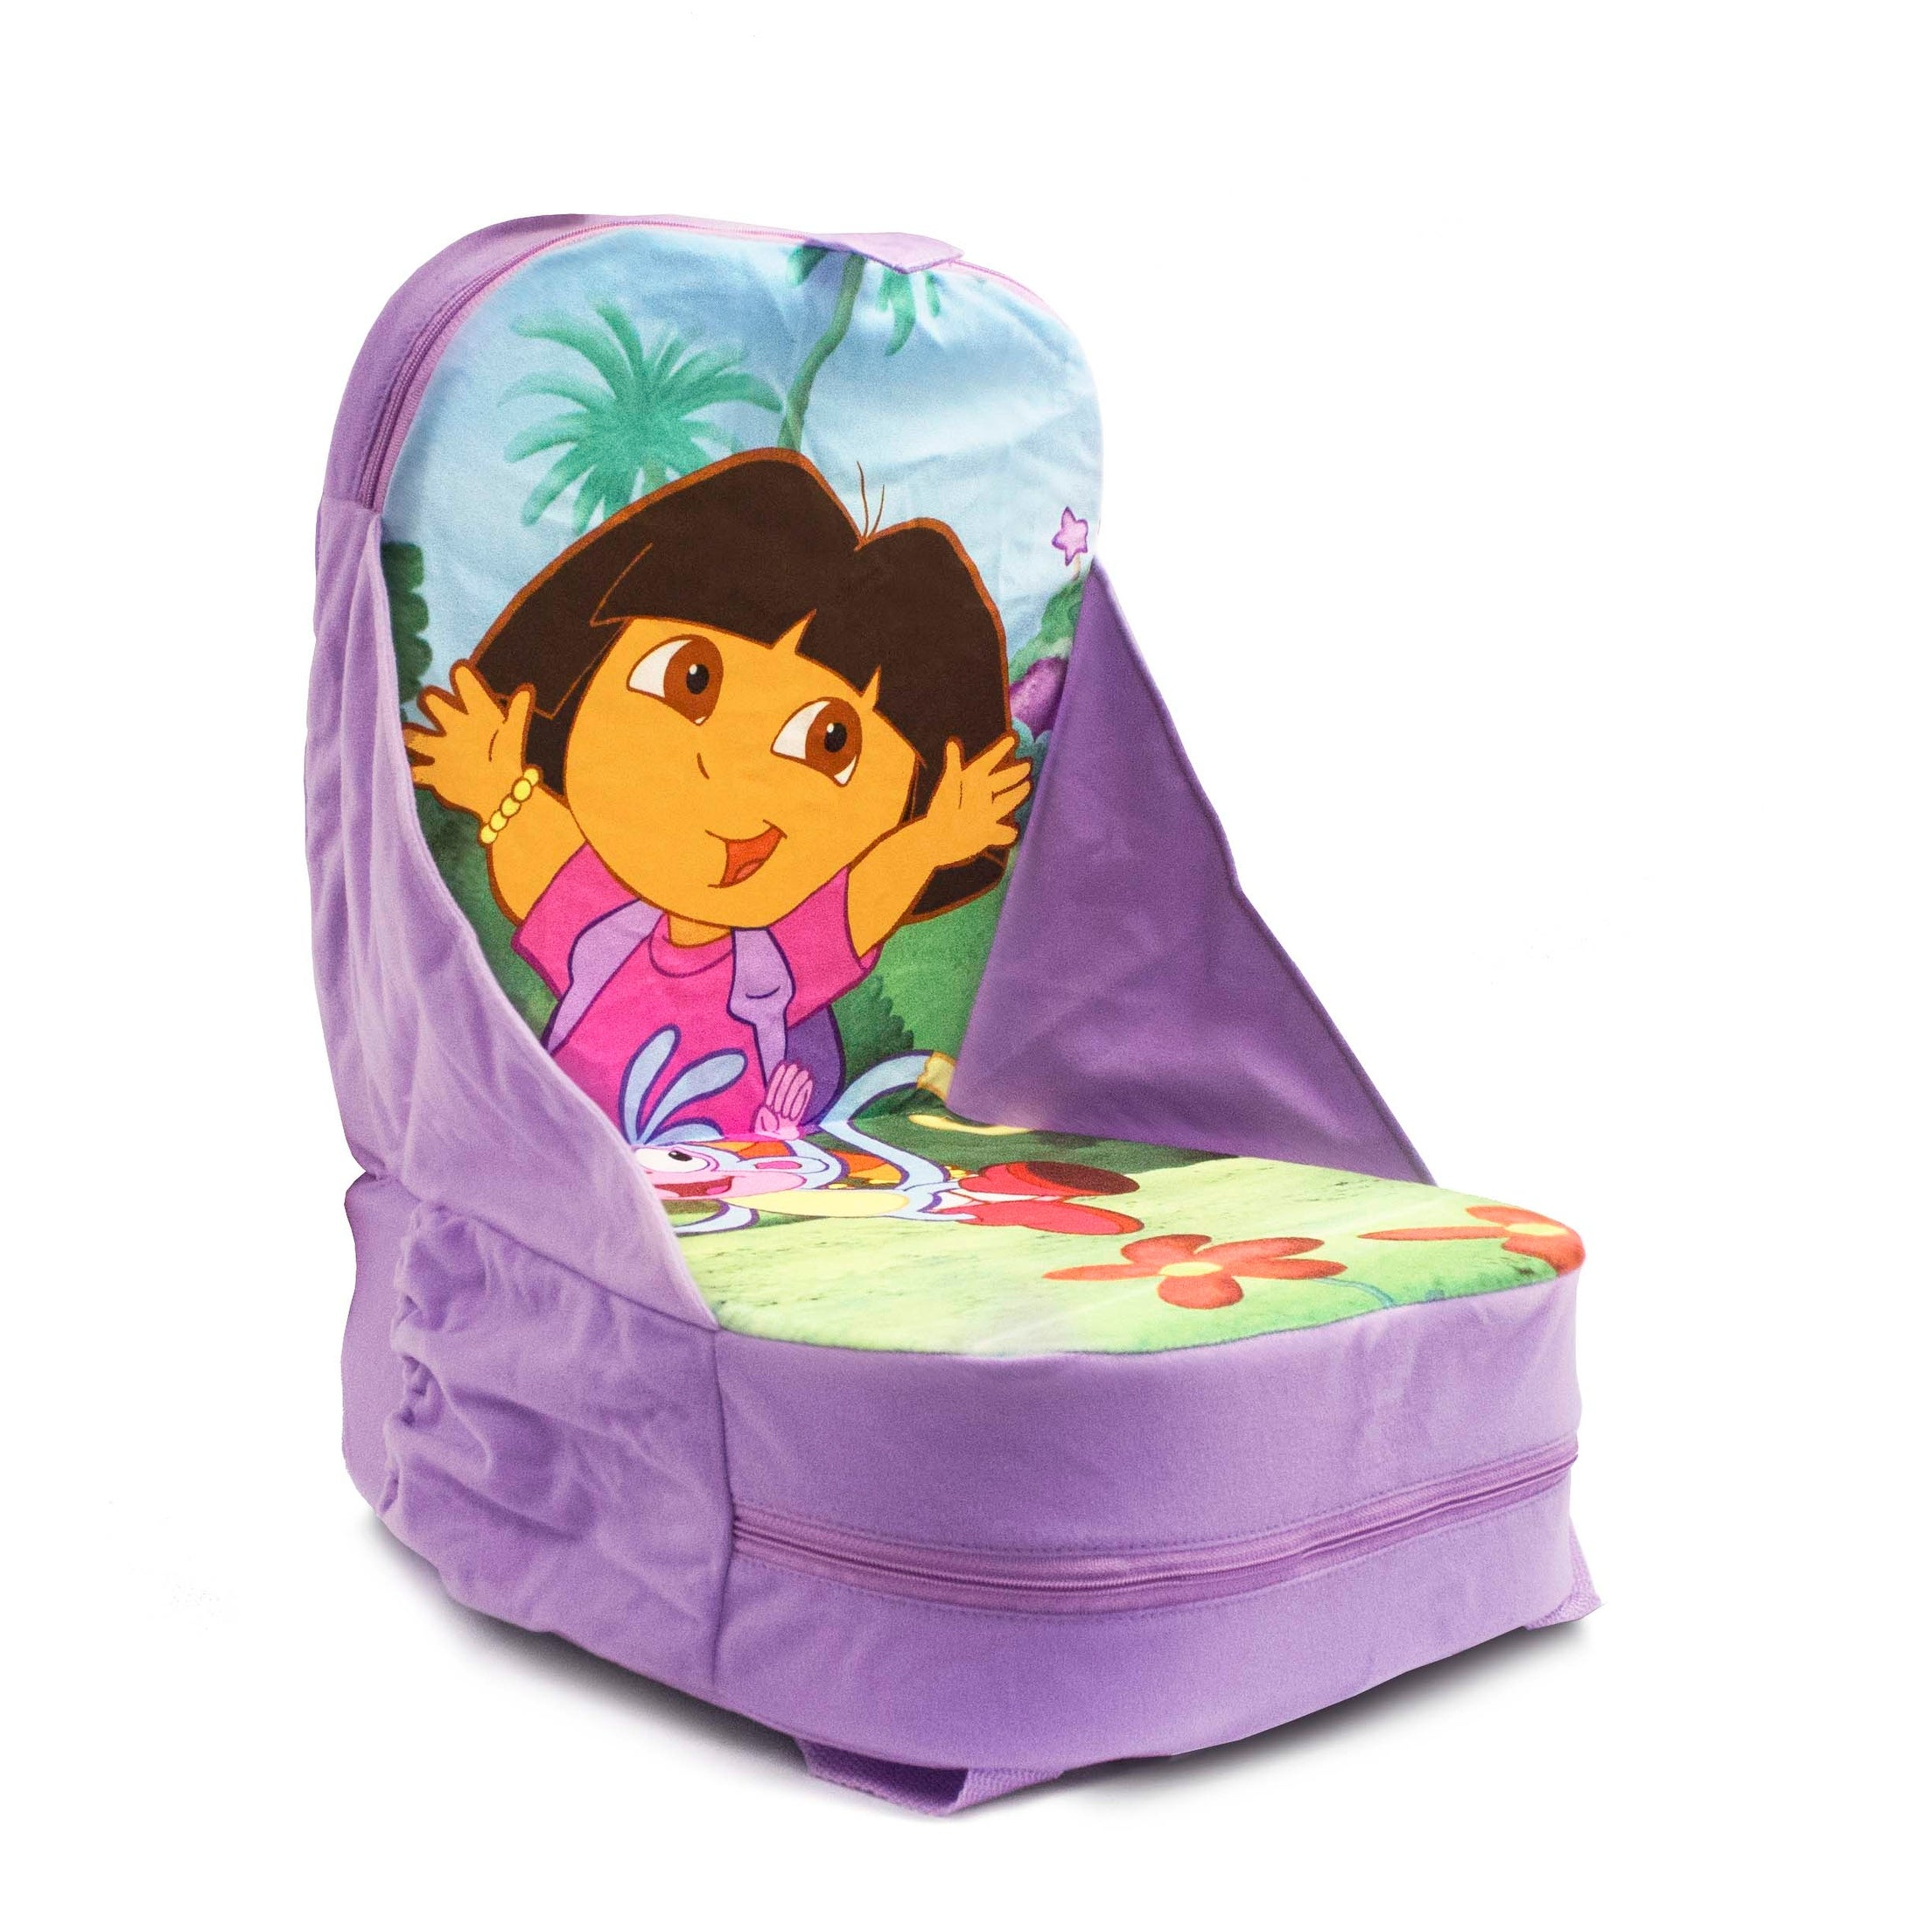 Remarkable Dora The Explorer Backpack Chair With Storage 11 0 In X 12 0 In X 6 0 In Gamerscity Chair Design For Home Gamerscityorg